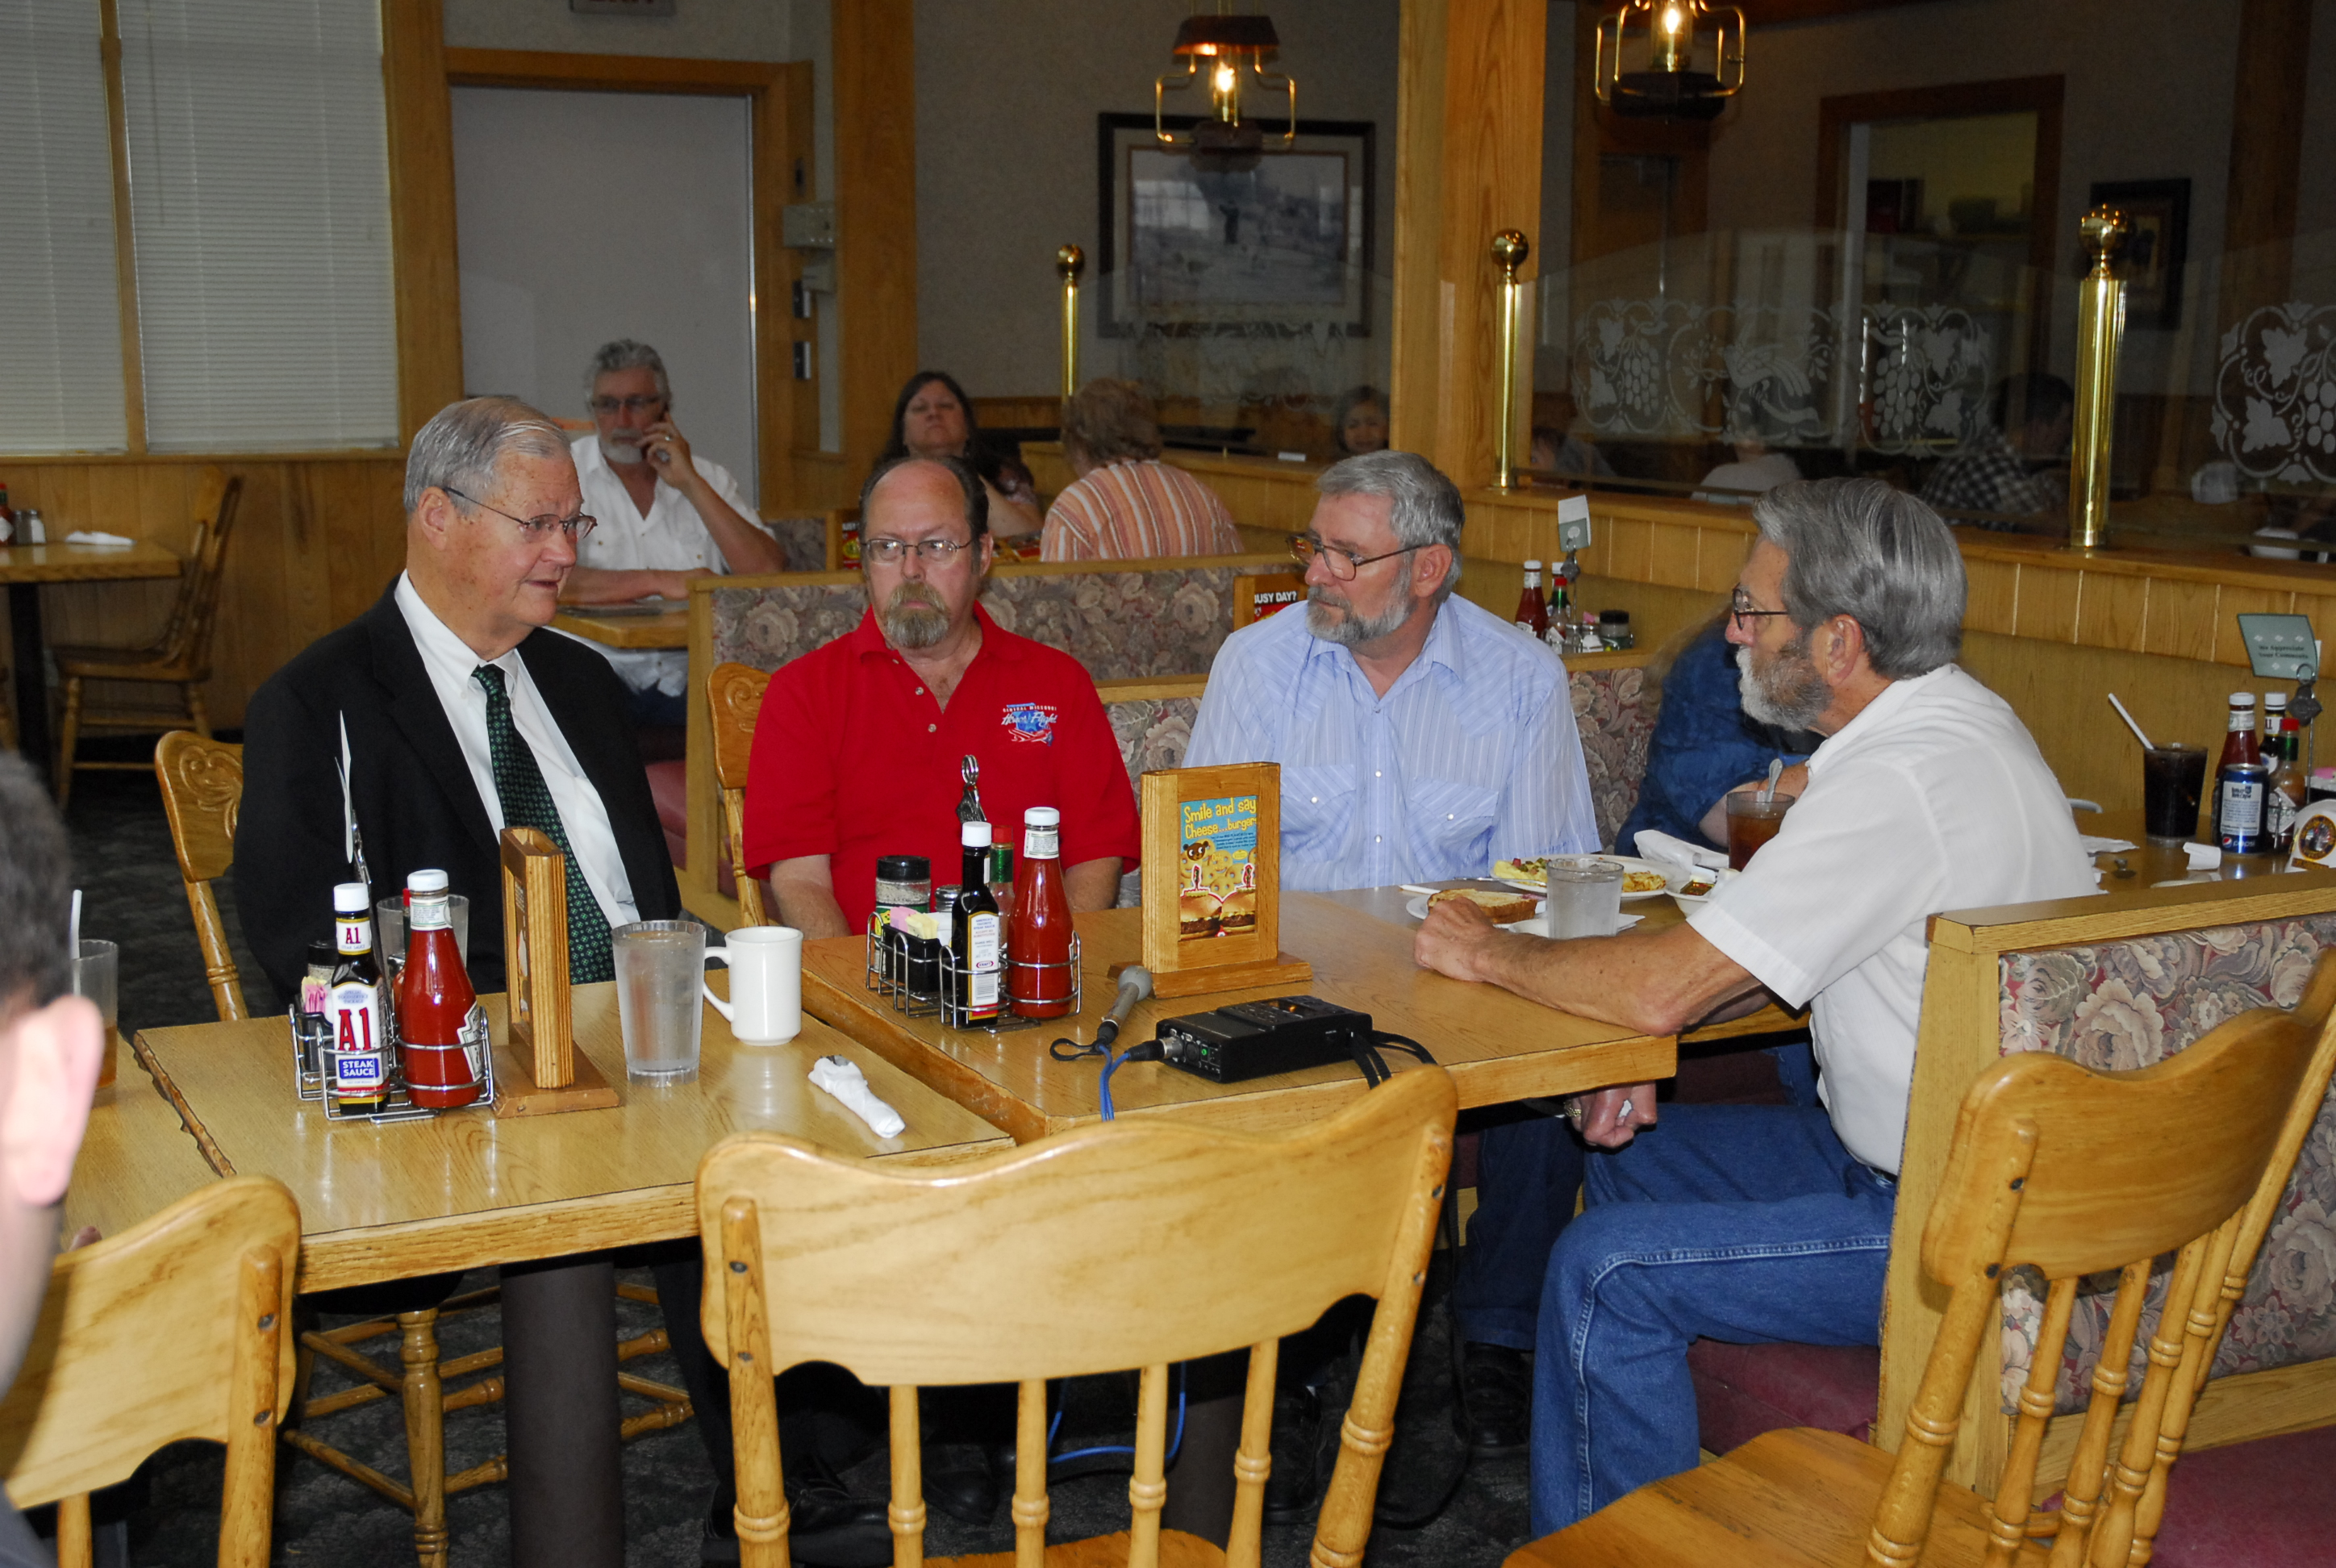 Skelton meets with veterans at Country Kitchen in Jefferson City to hear their concerns.